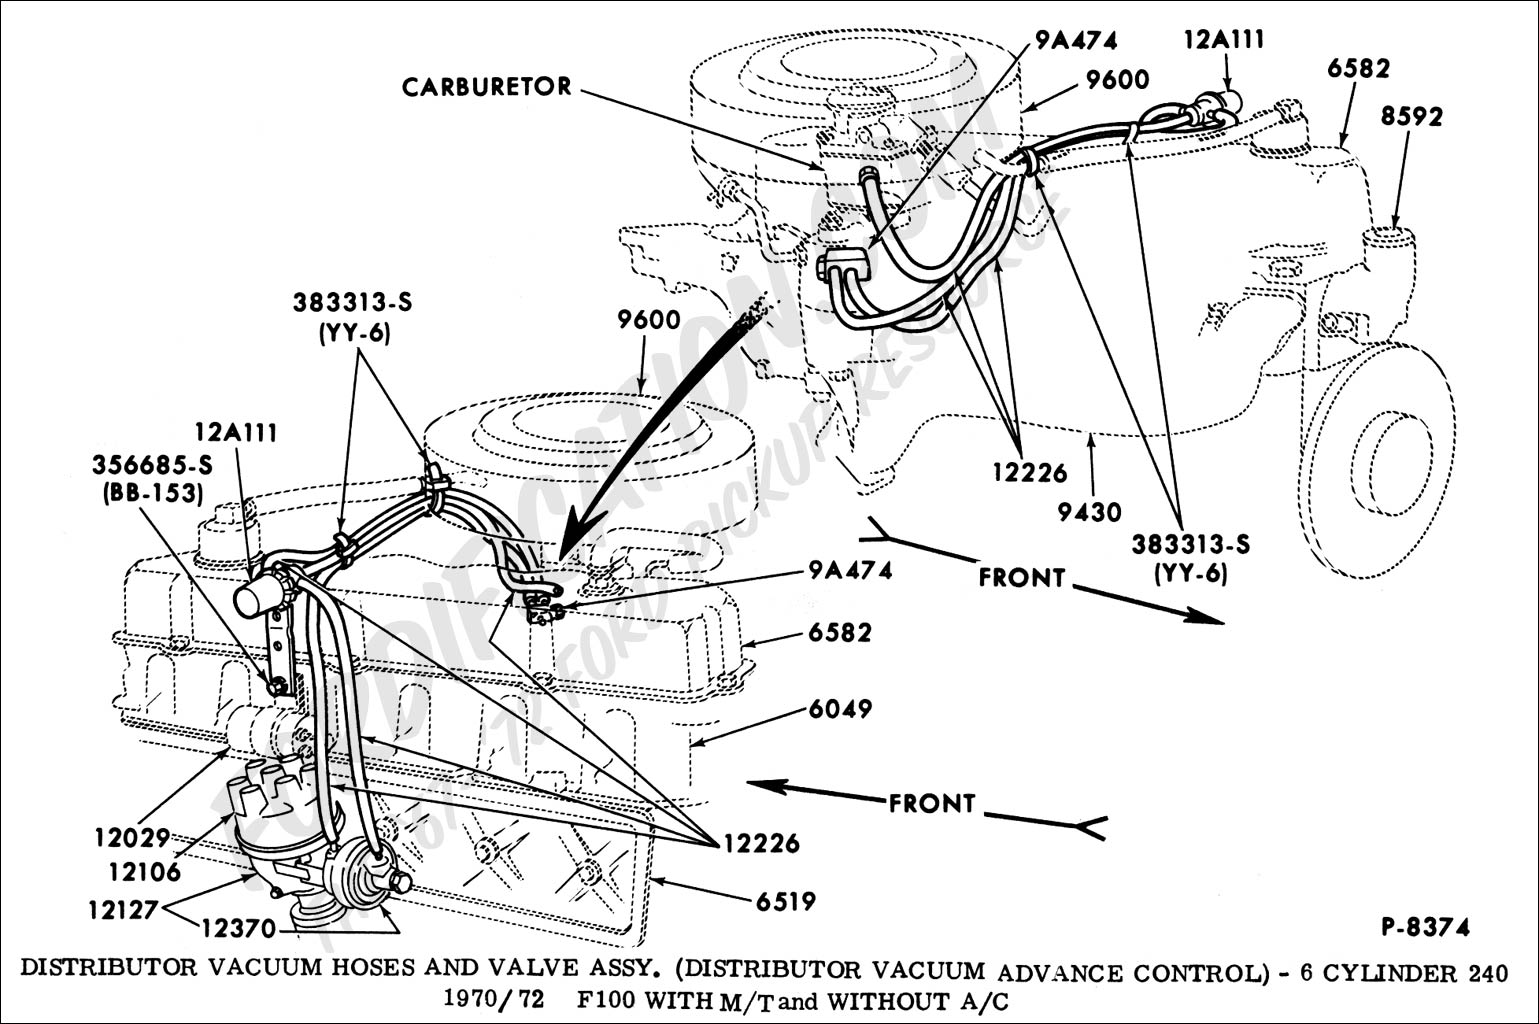 92 Ford Ranger Wiring Diagram moreover 456381 Overhead Console  pass moreover Discussion T948 ds543768 moreover Schematics h also 4fy6o 1999 Ford Expedition Xlt 4 6l Canister. on 2002 ford explorer electrical schematic